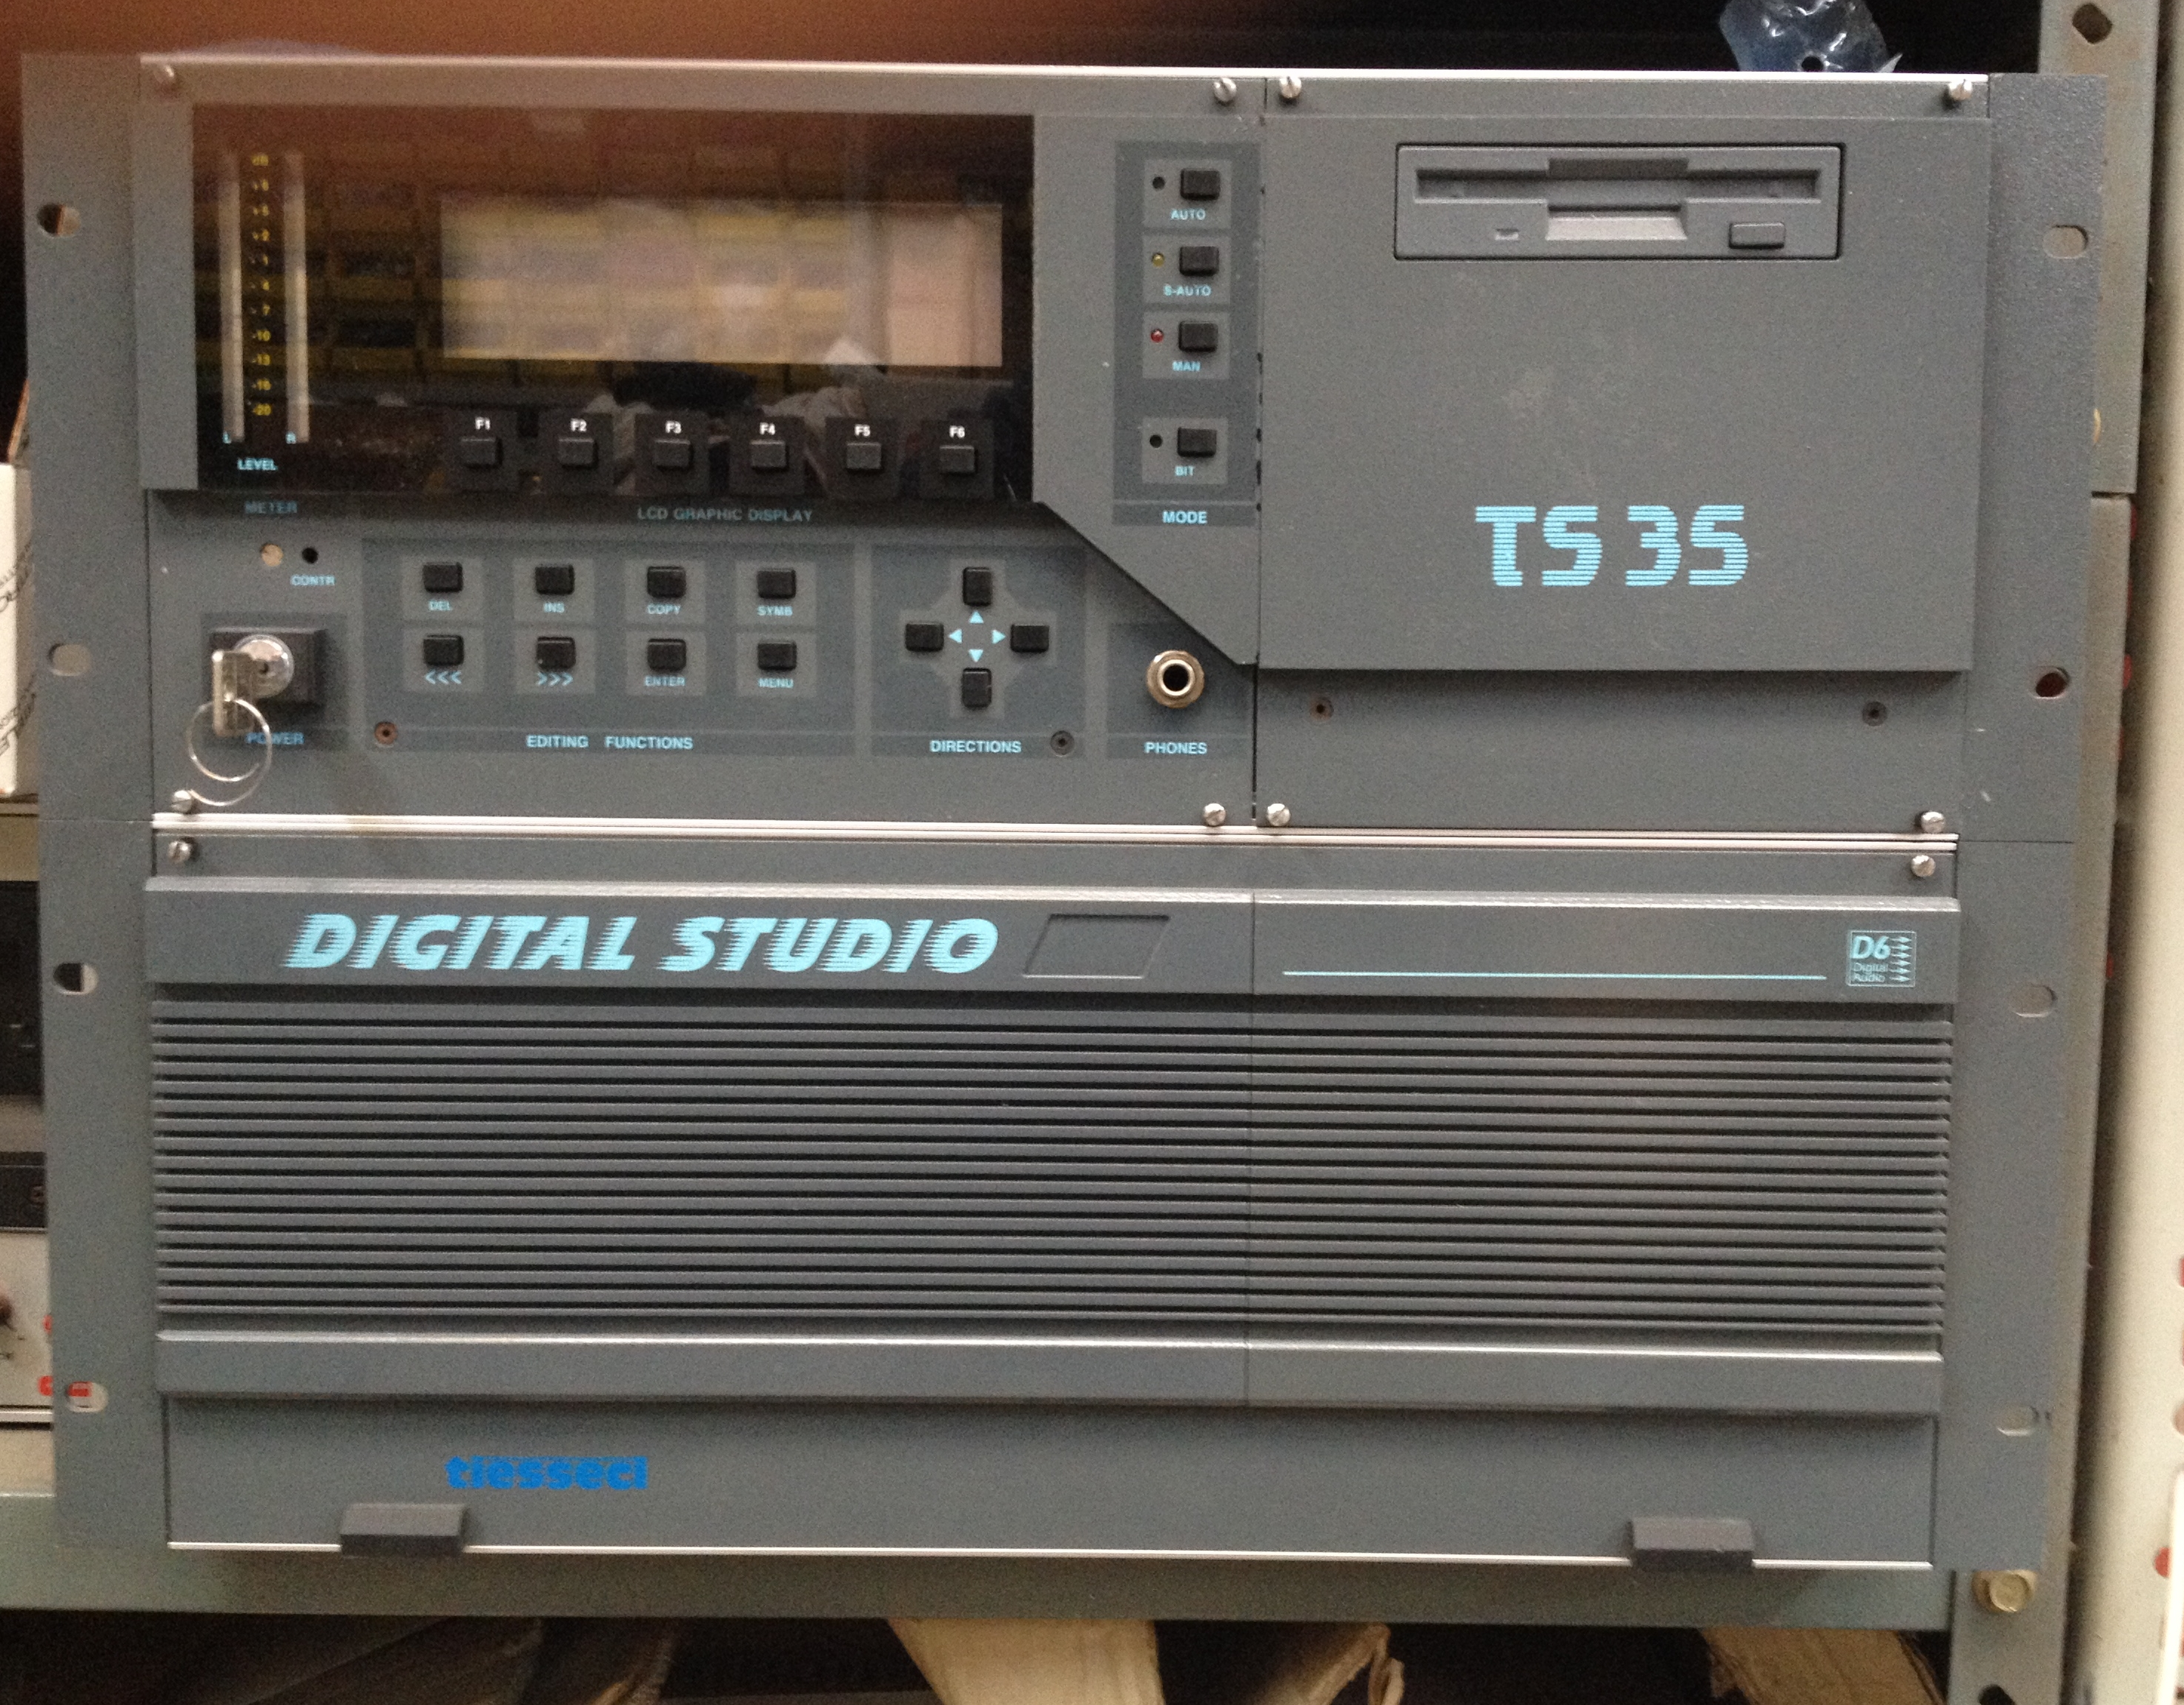 Digital Studio TS-35